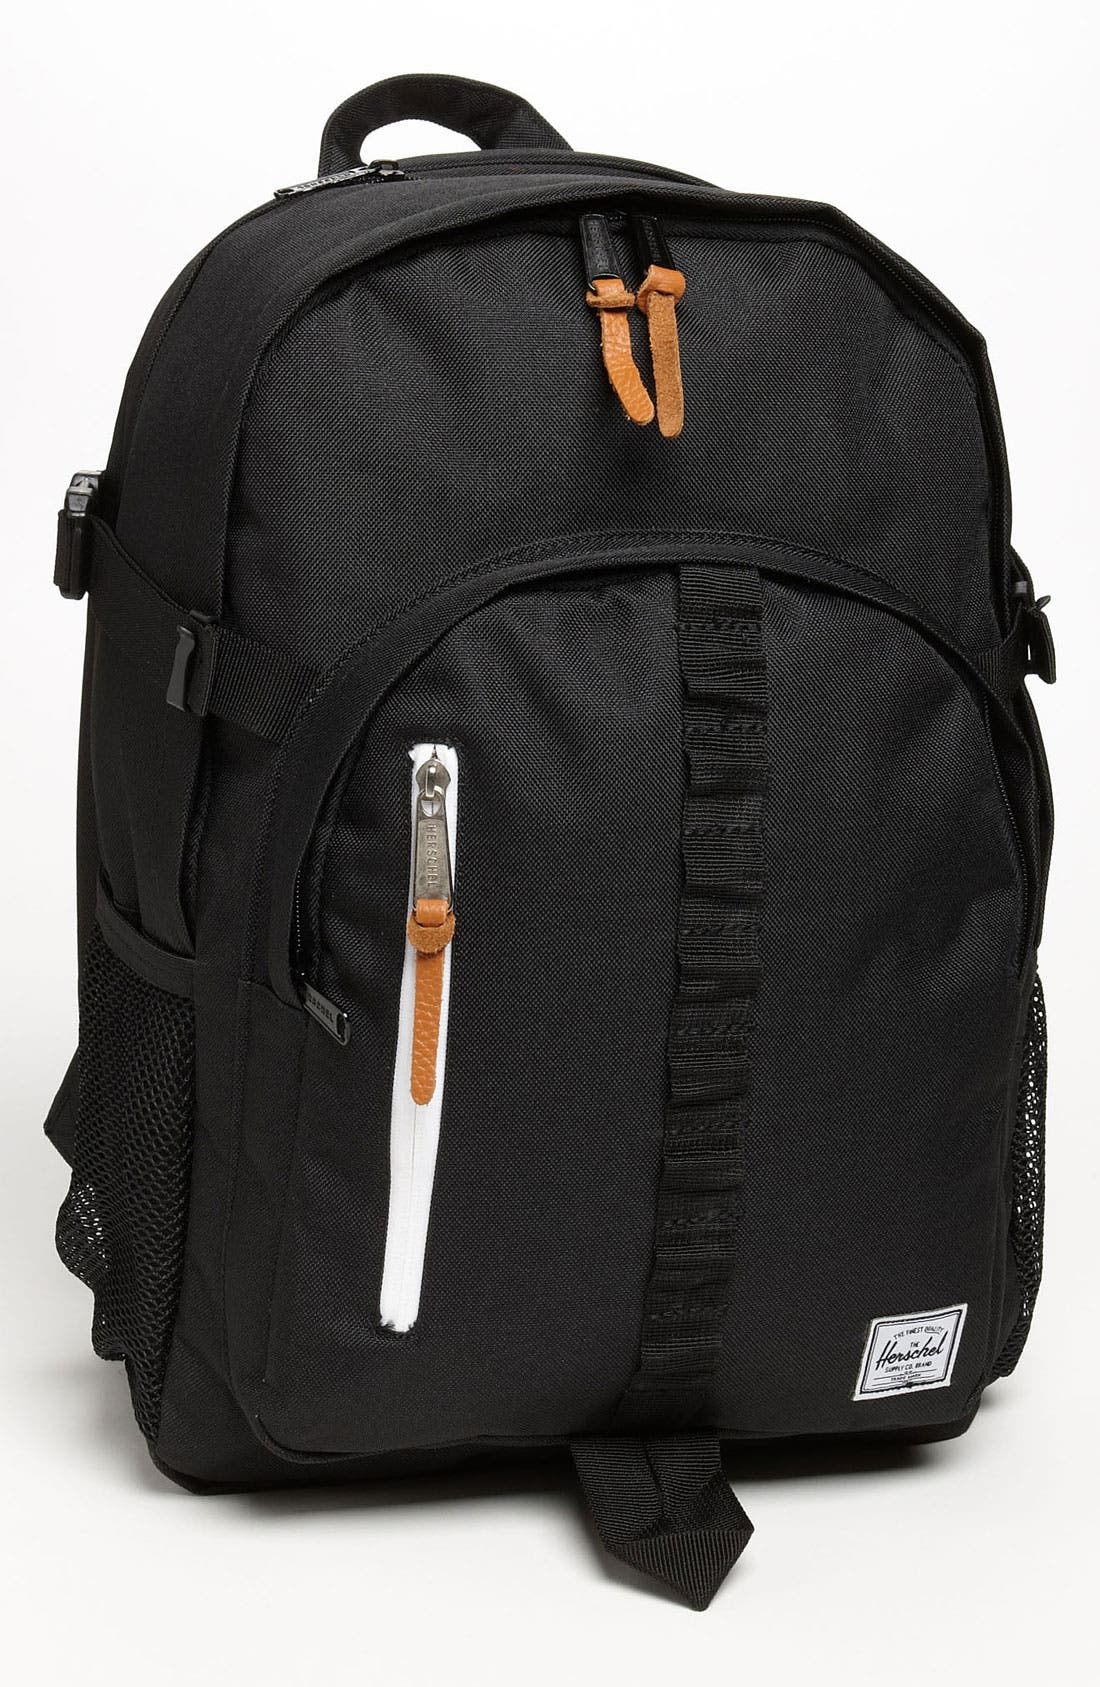 HERSCHEL SUPPLY CO., 'Parkgate' Backpack, Main thumbnail 1, color, 001